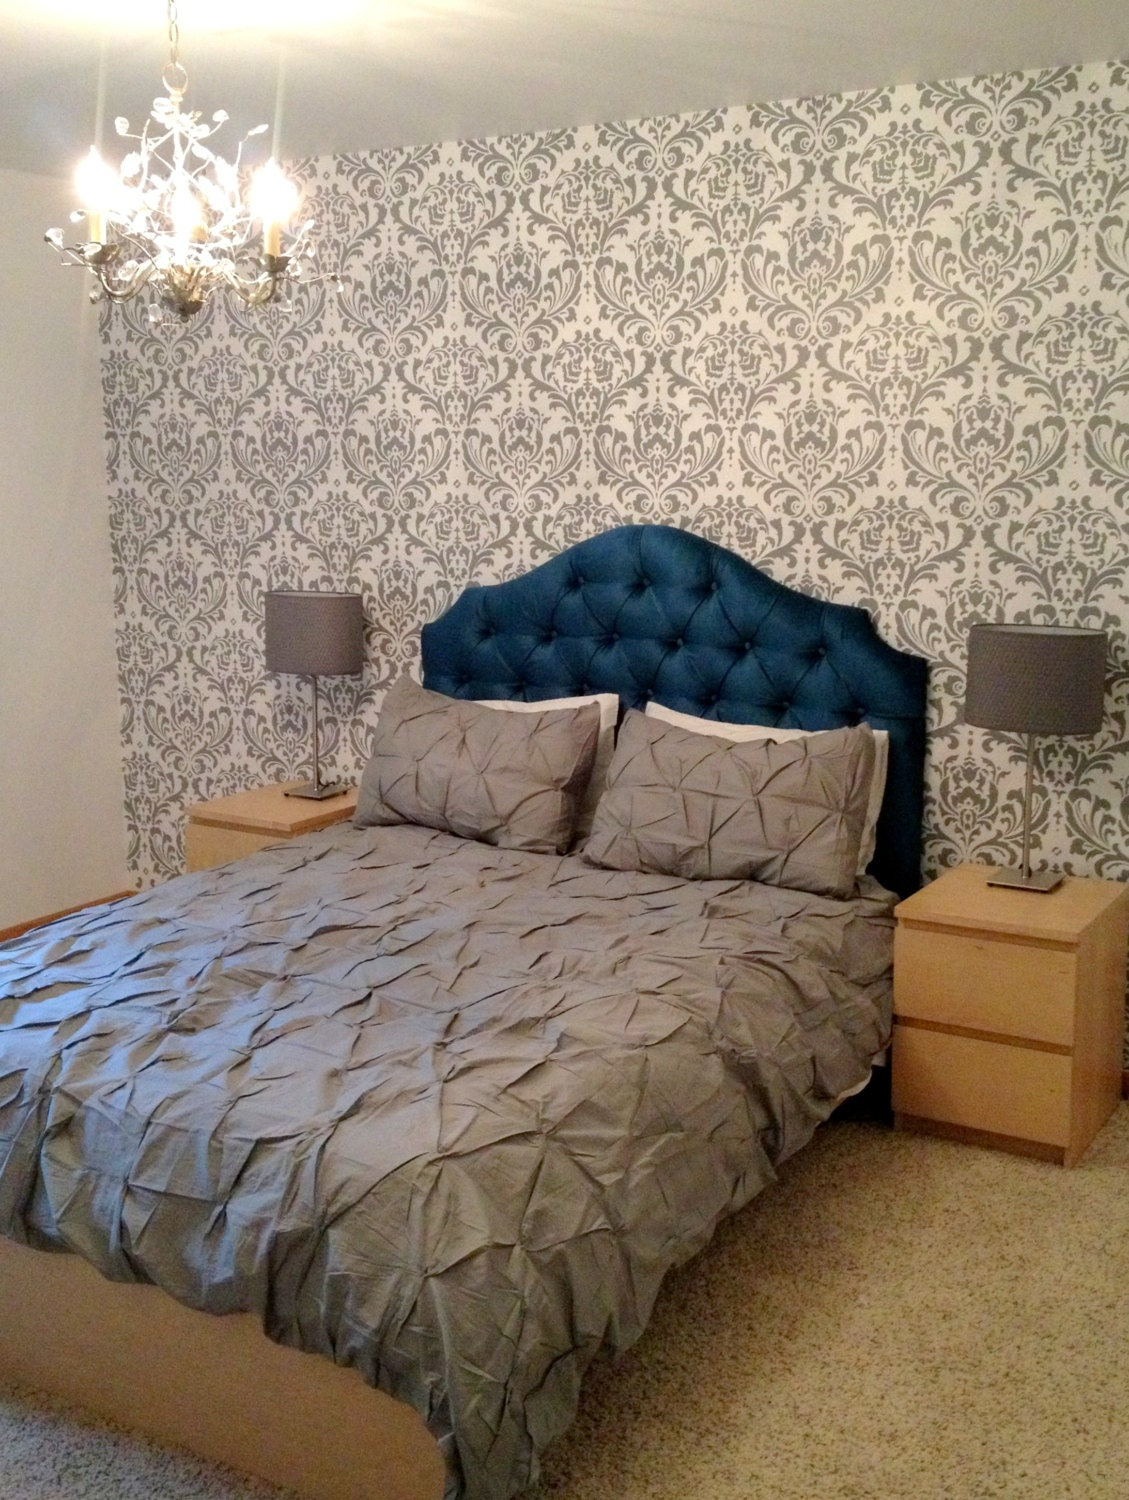 Custom Tufted Upholstered Headboard Wall Mounted By